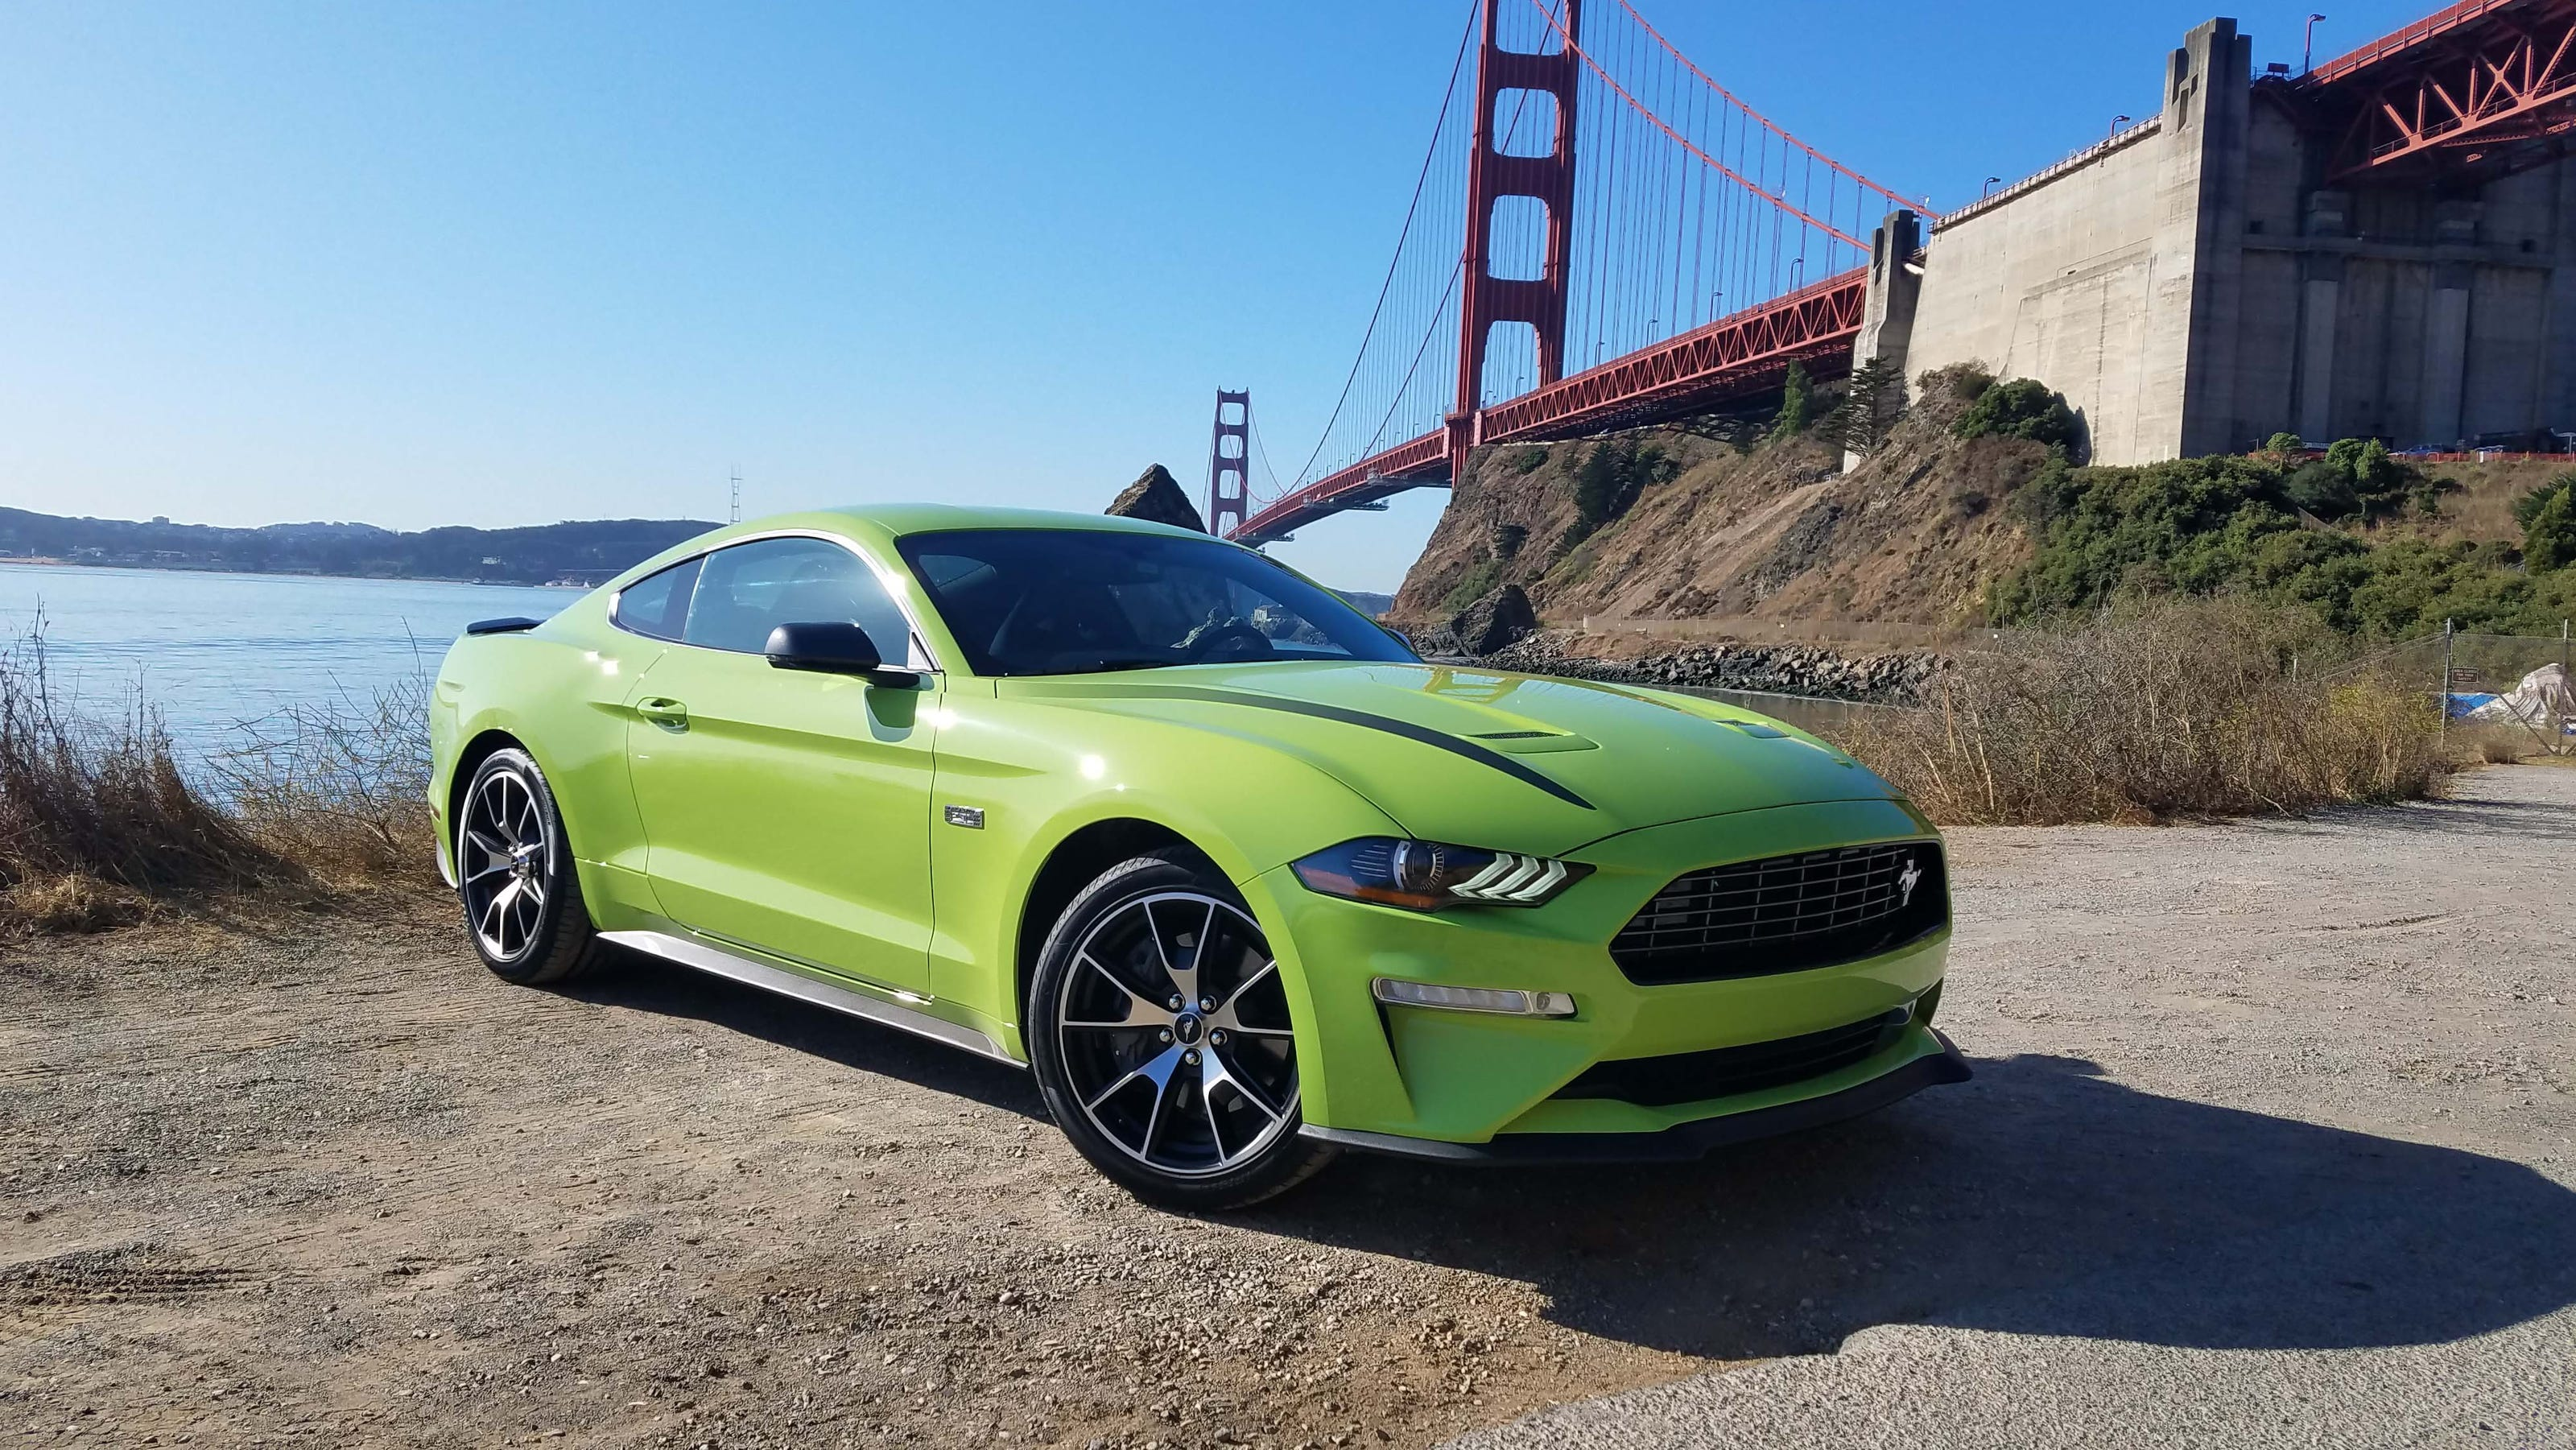 Payne Mustang High Performance Is A Wild But Affordable Stallion